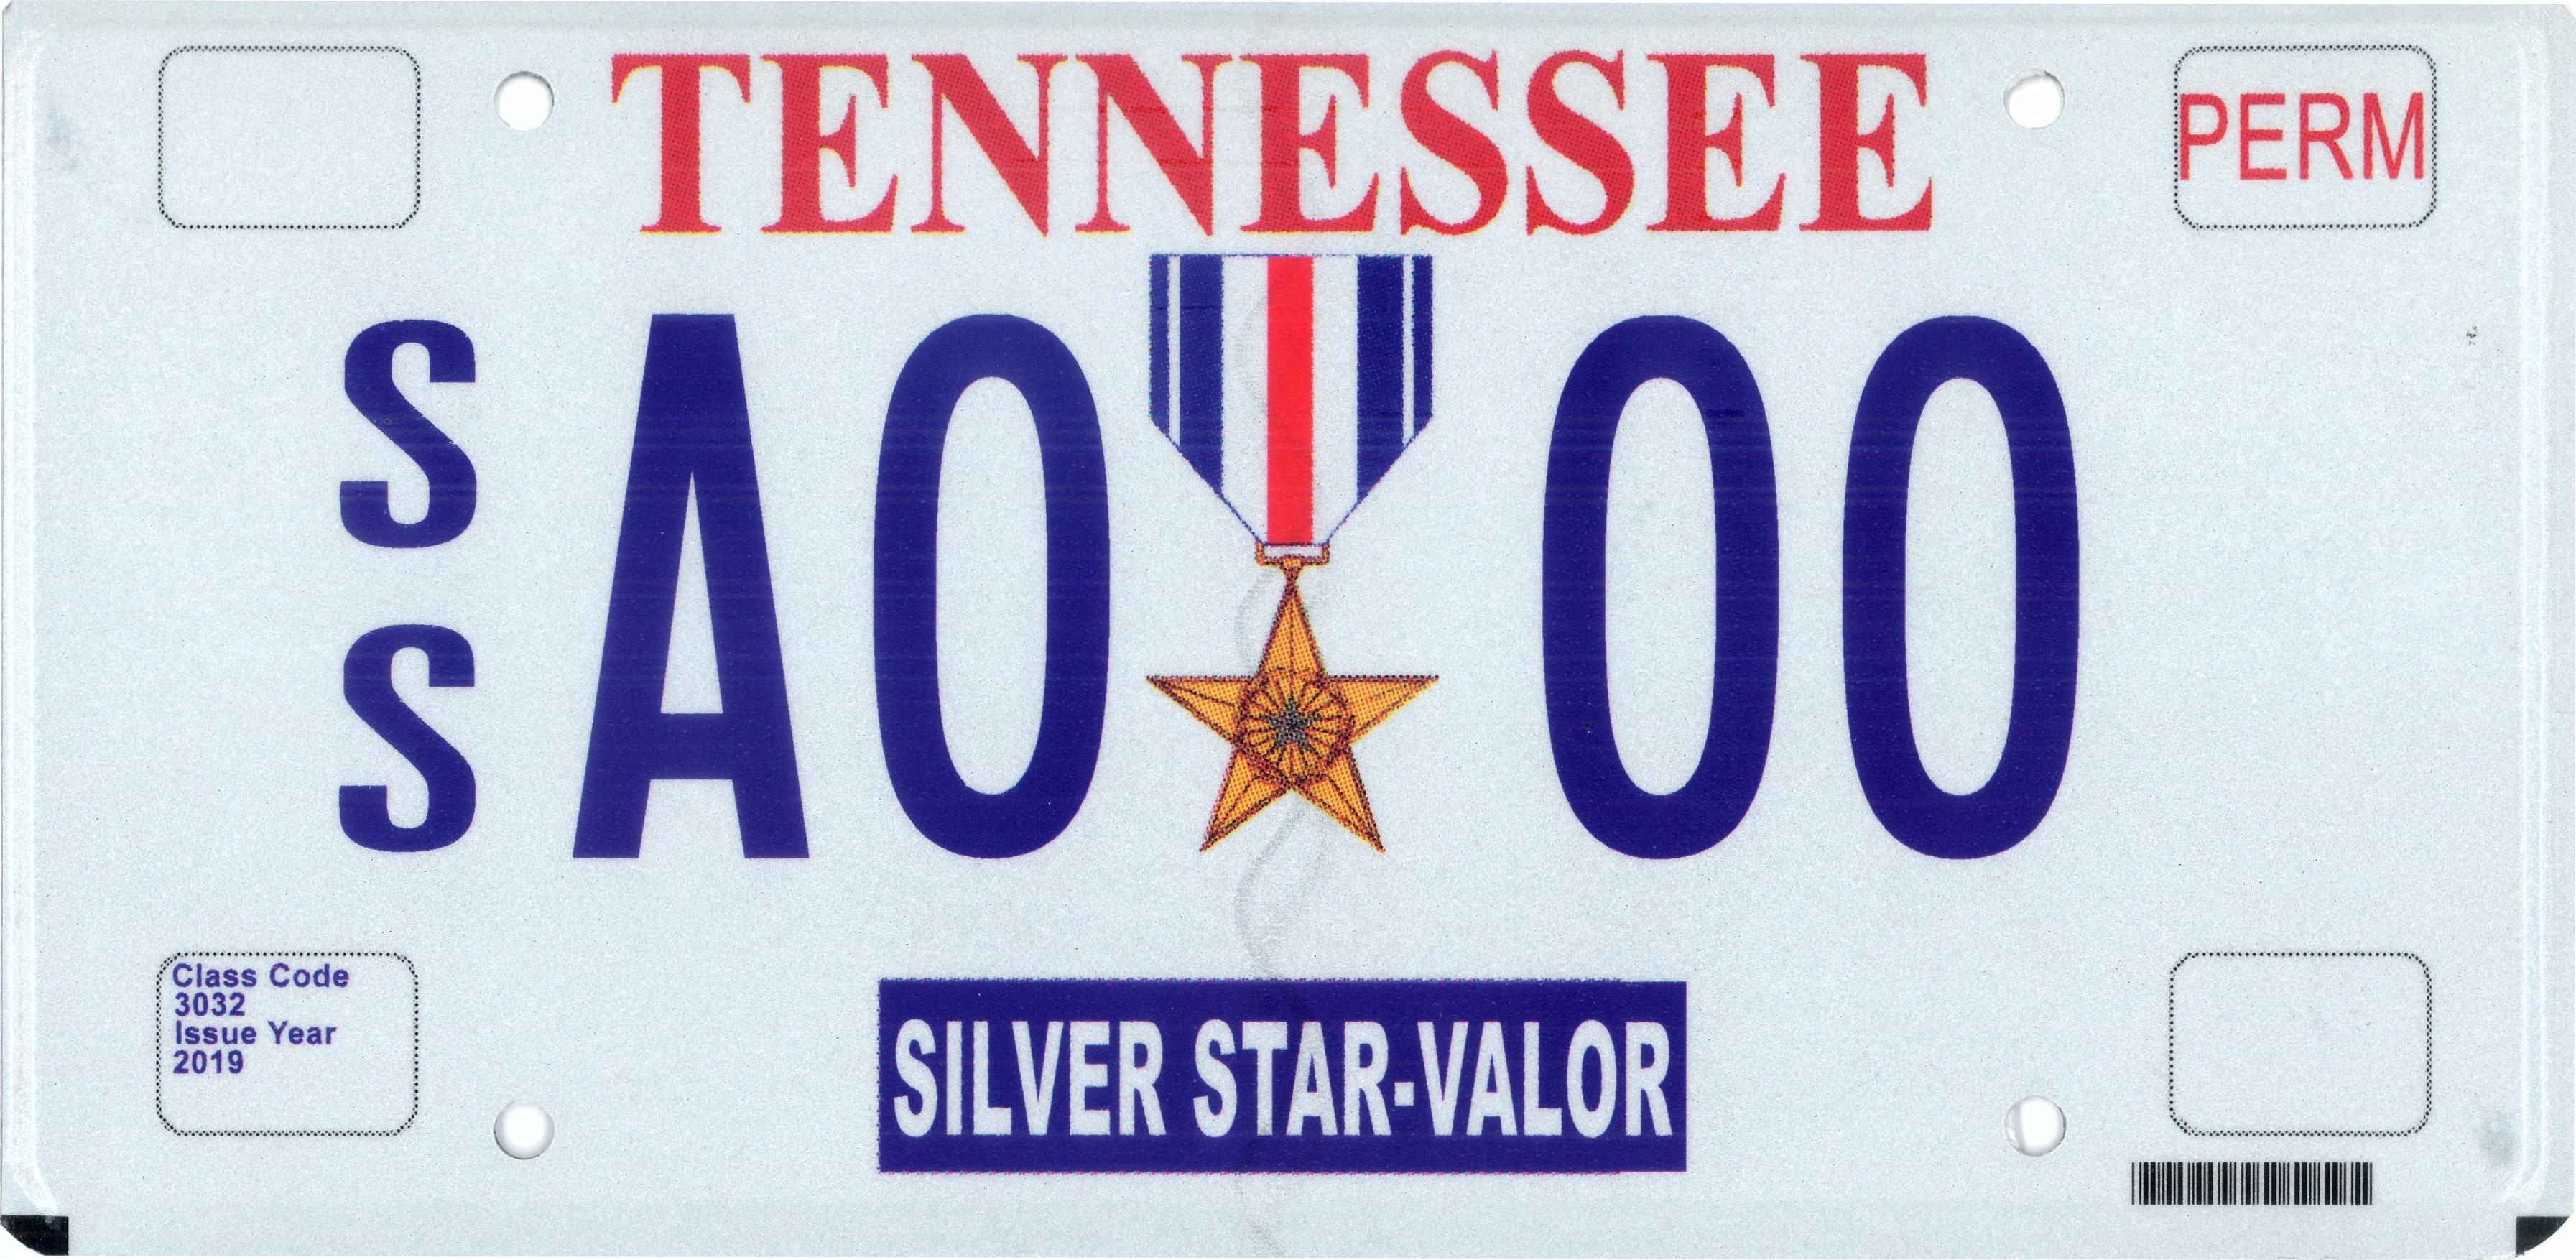 Silver_Star_1st_Plate_Redesign_cls_3032.jpg